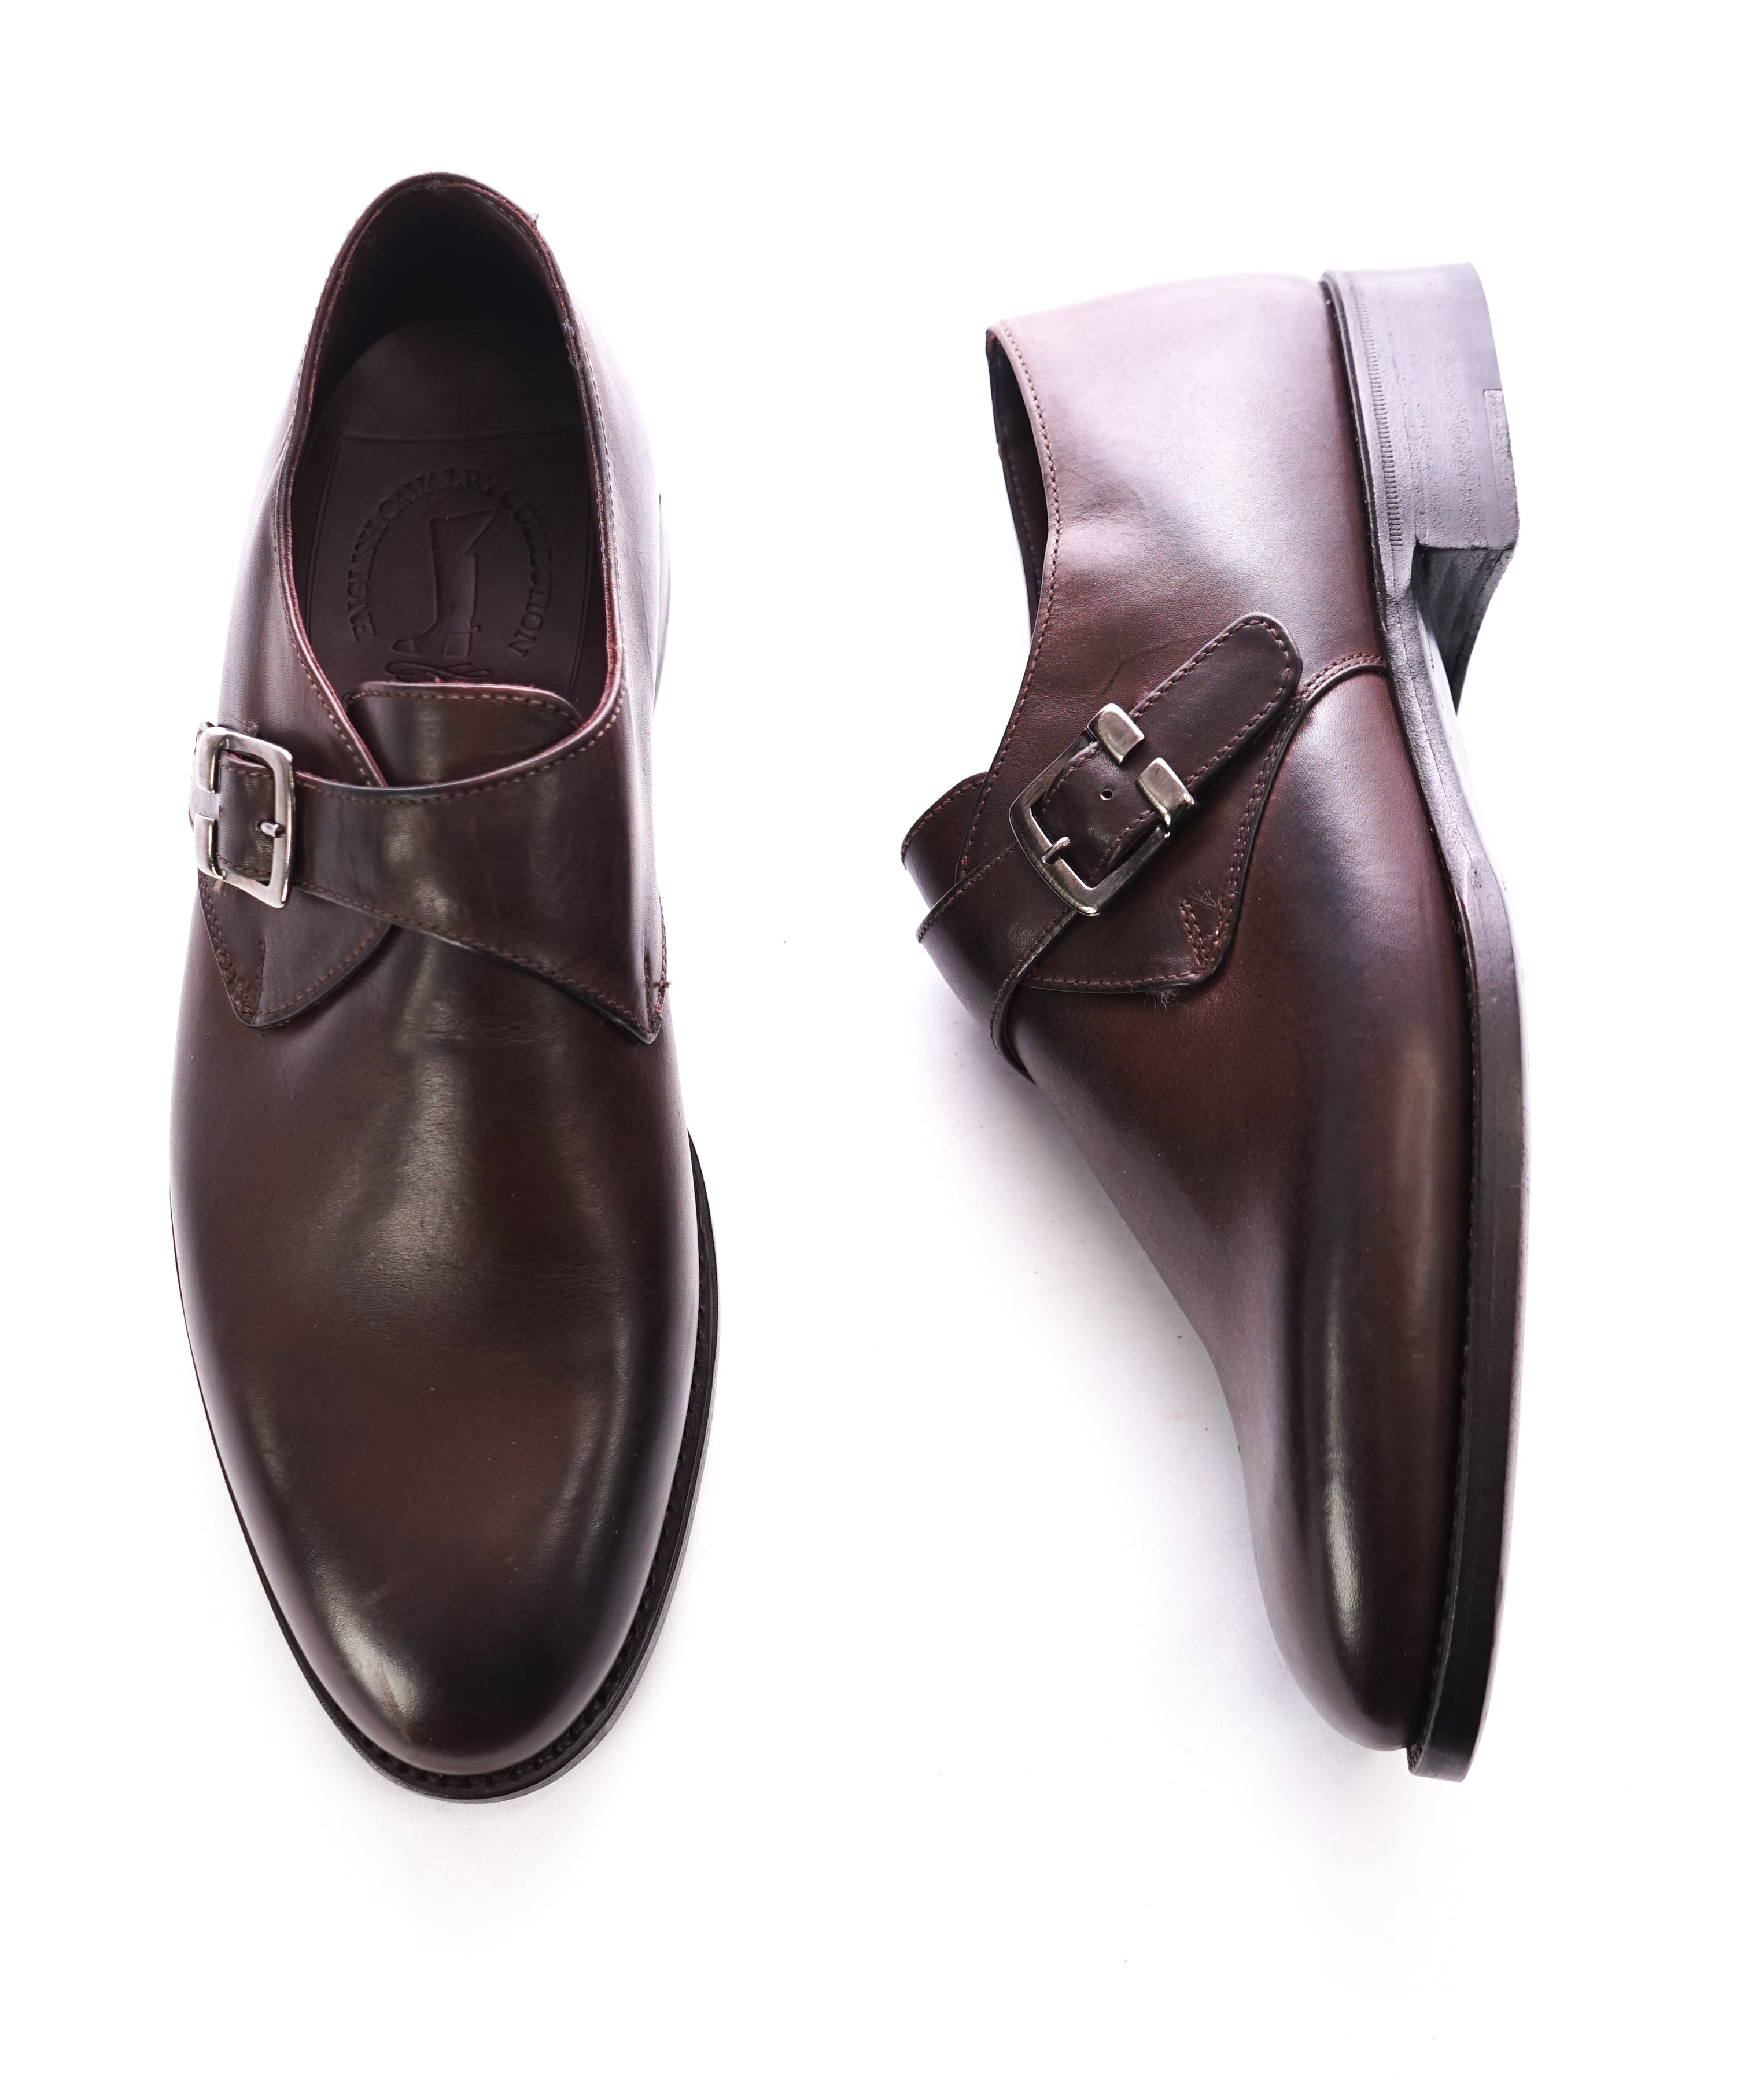 NETTLETON - Brown Hand Made In England Single Monk Loafers - 8